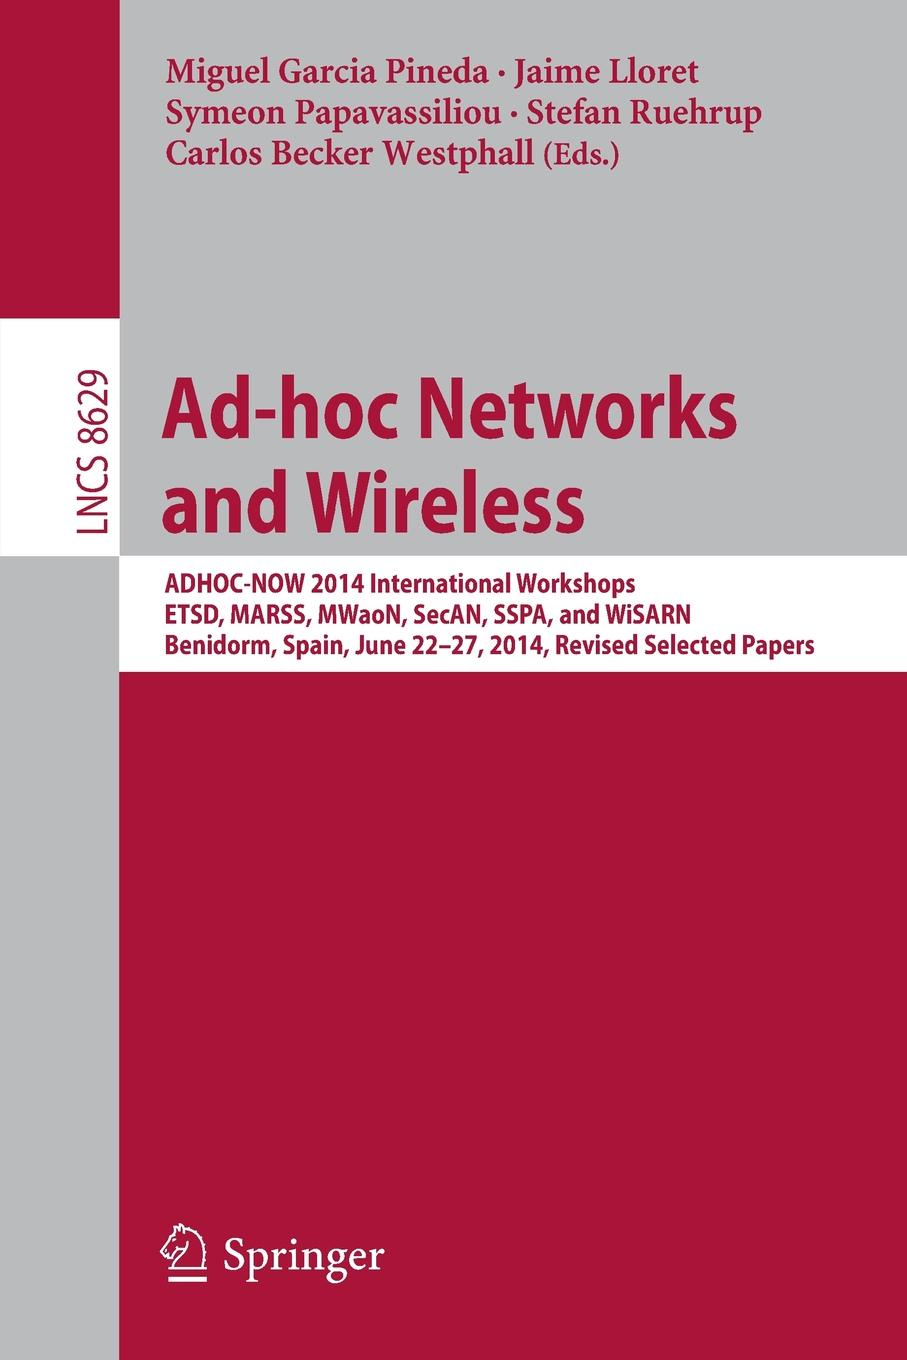 Ad-hoc Networks and Wireless. ADHOC-NOW 2014 International Workshops, ETSD, MARSS, MWaoN, SecAN, SSPA, and WiSARN, Benidorm, Spain, June 22--27, 2014, Revised Selected Papers цена 2017